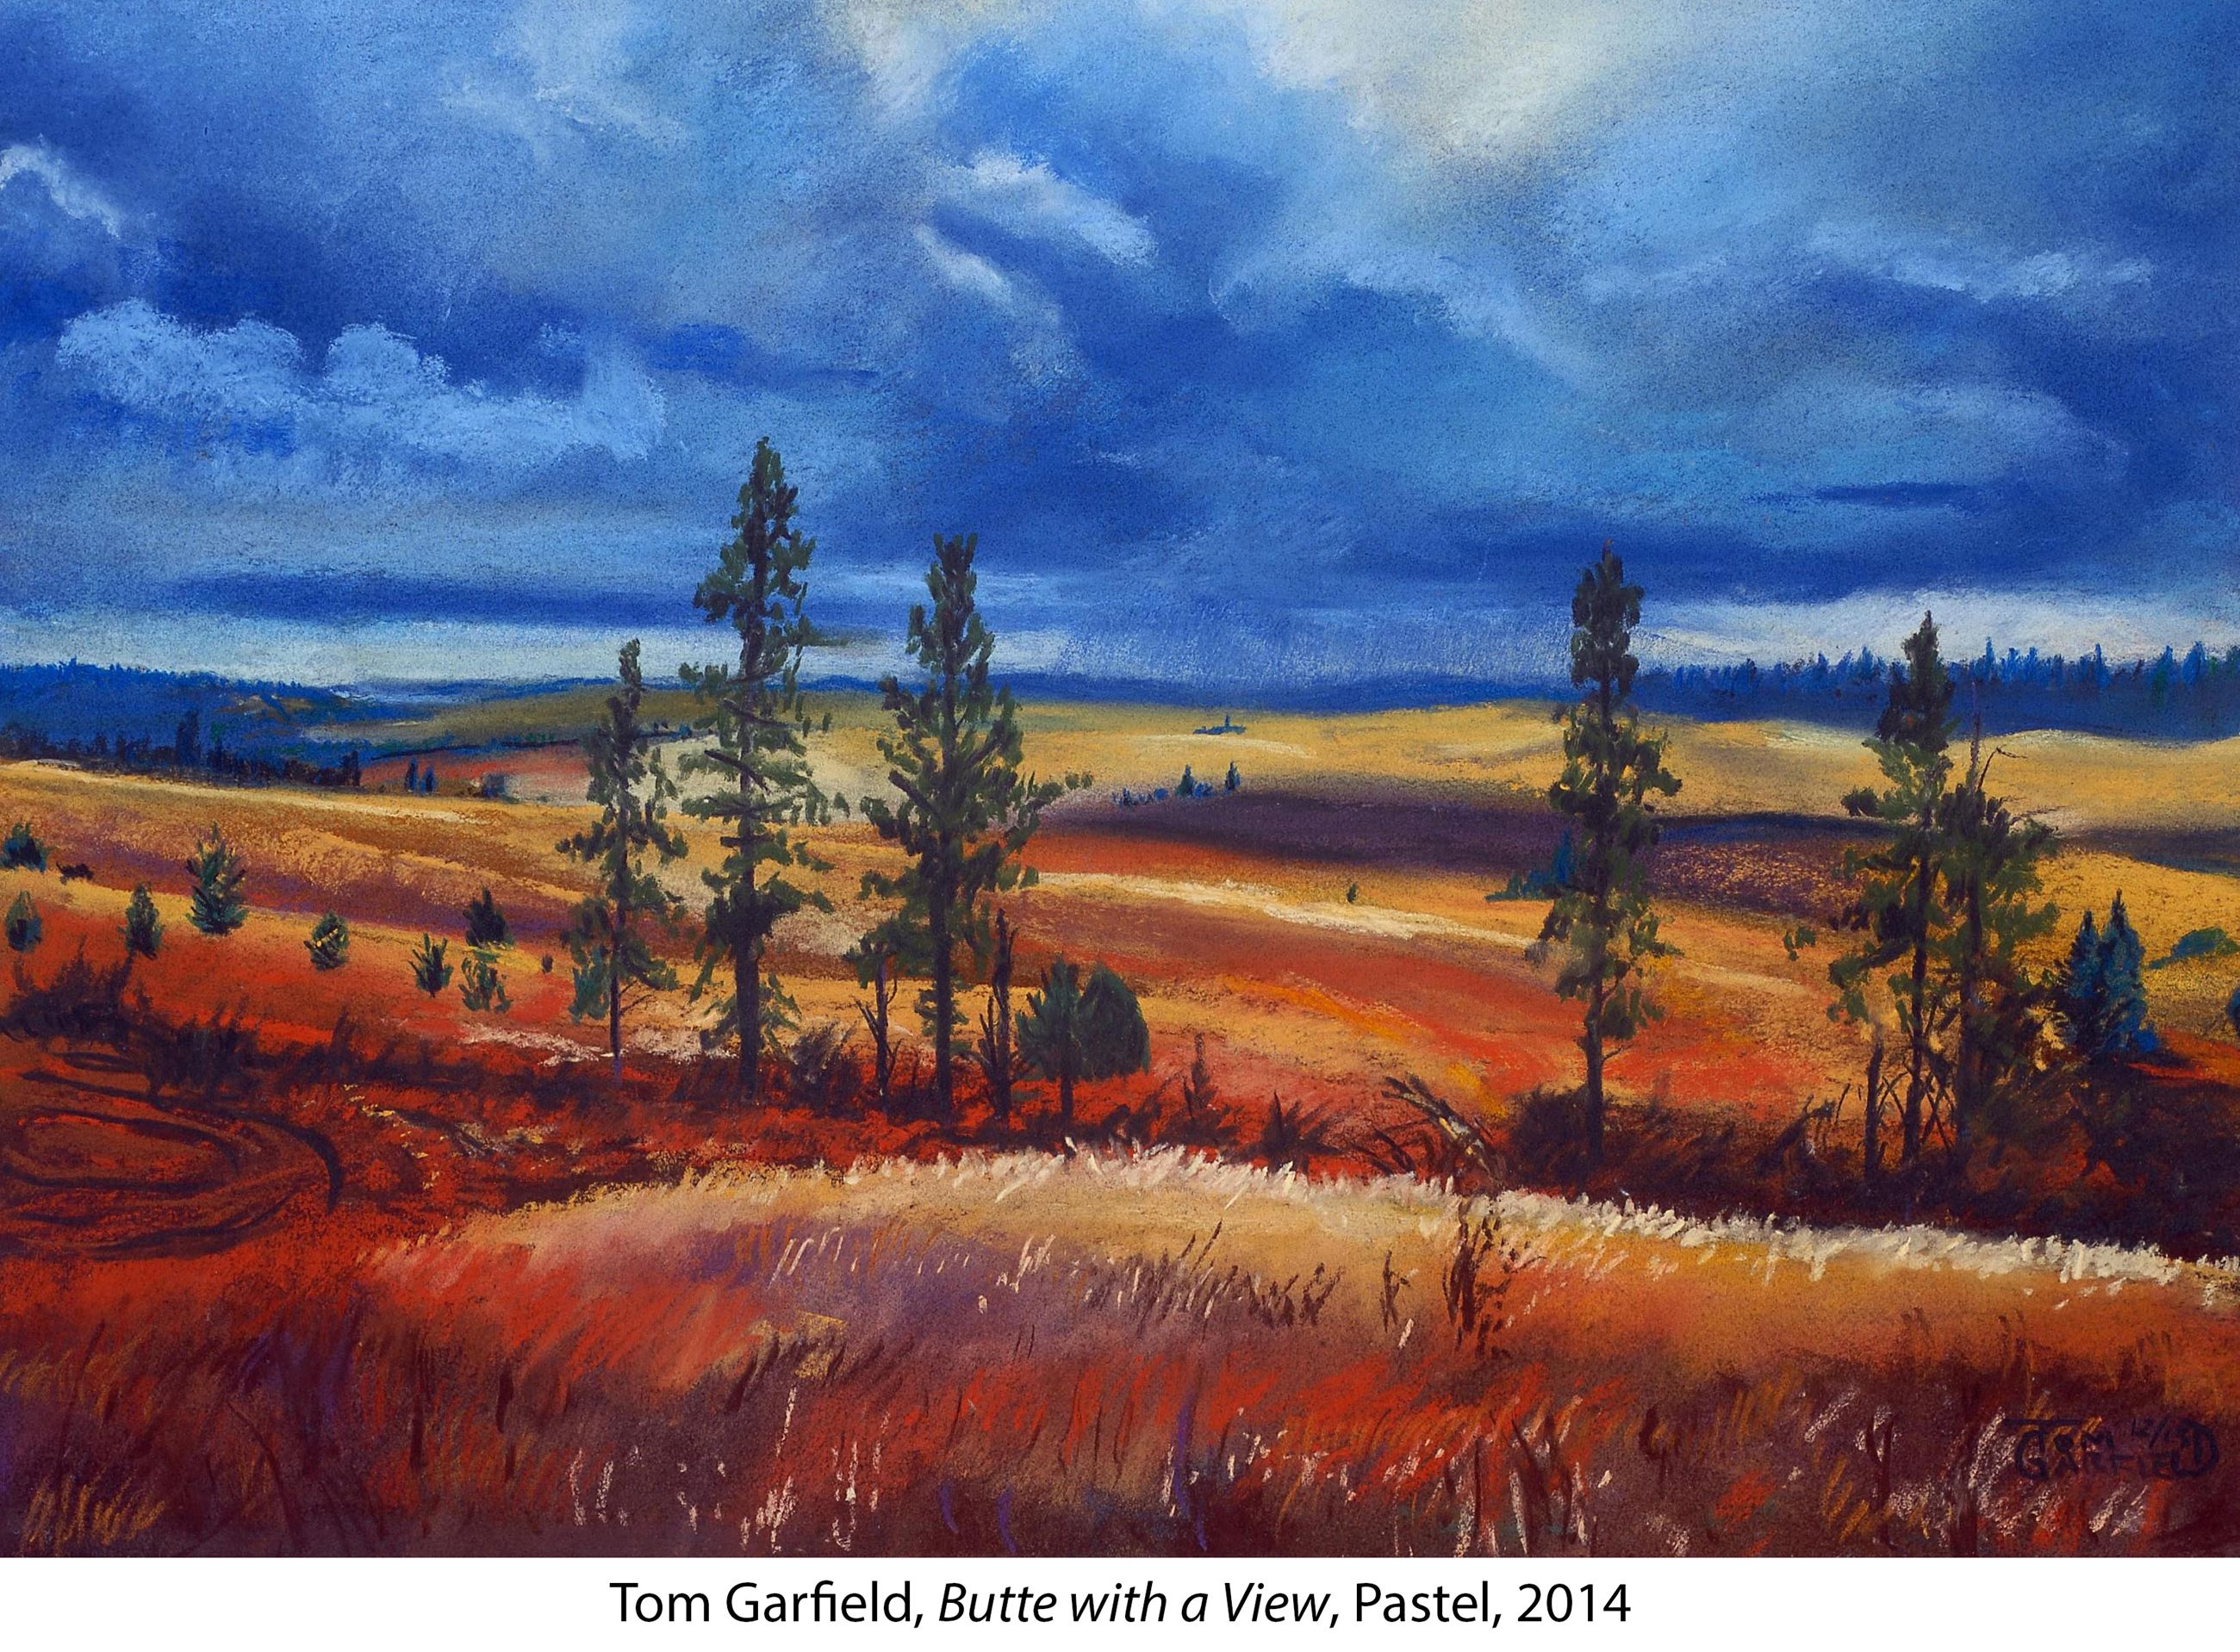 Tom Garfield, Butte with a View, Pastel, 2014